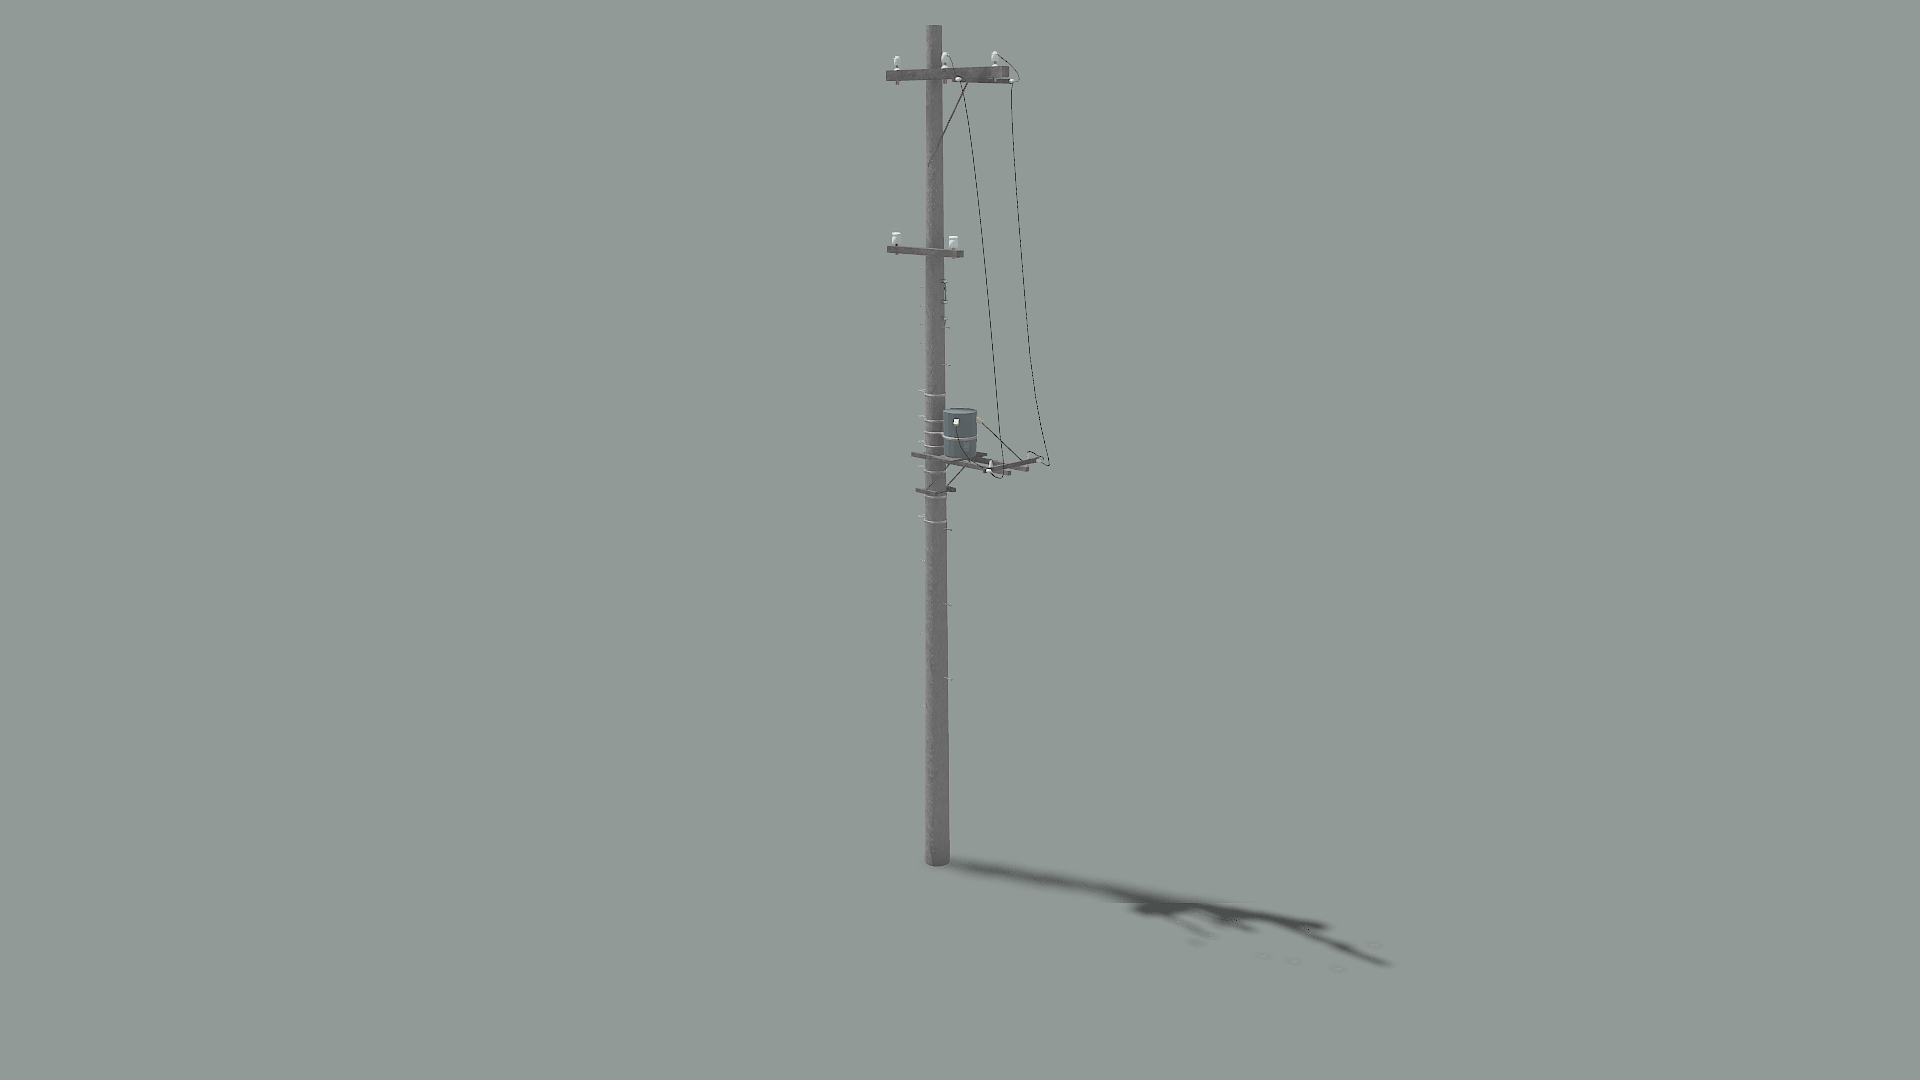 Land_powerlines_pole_01_F.png